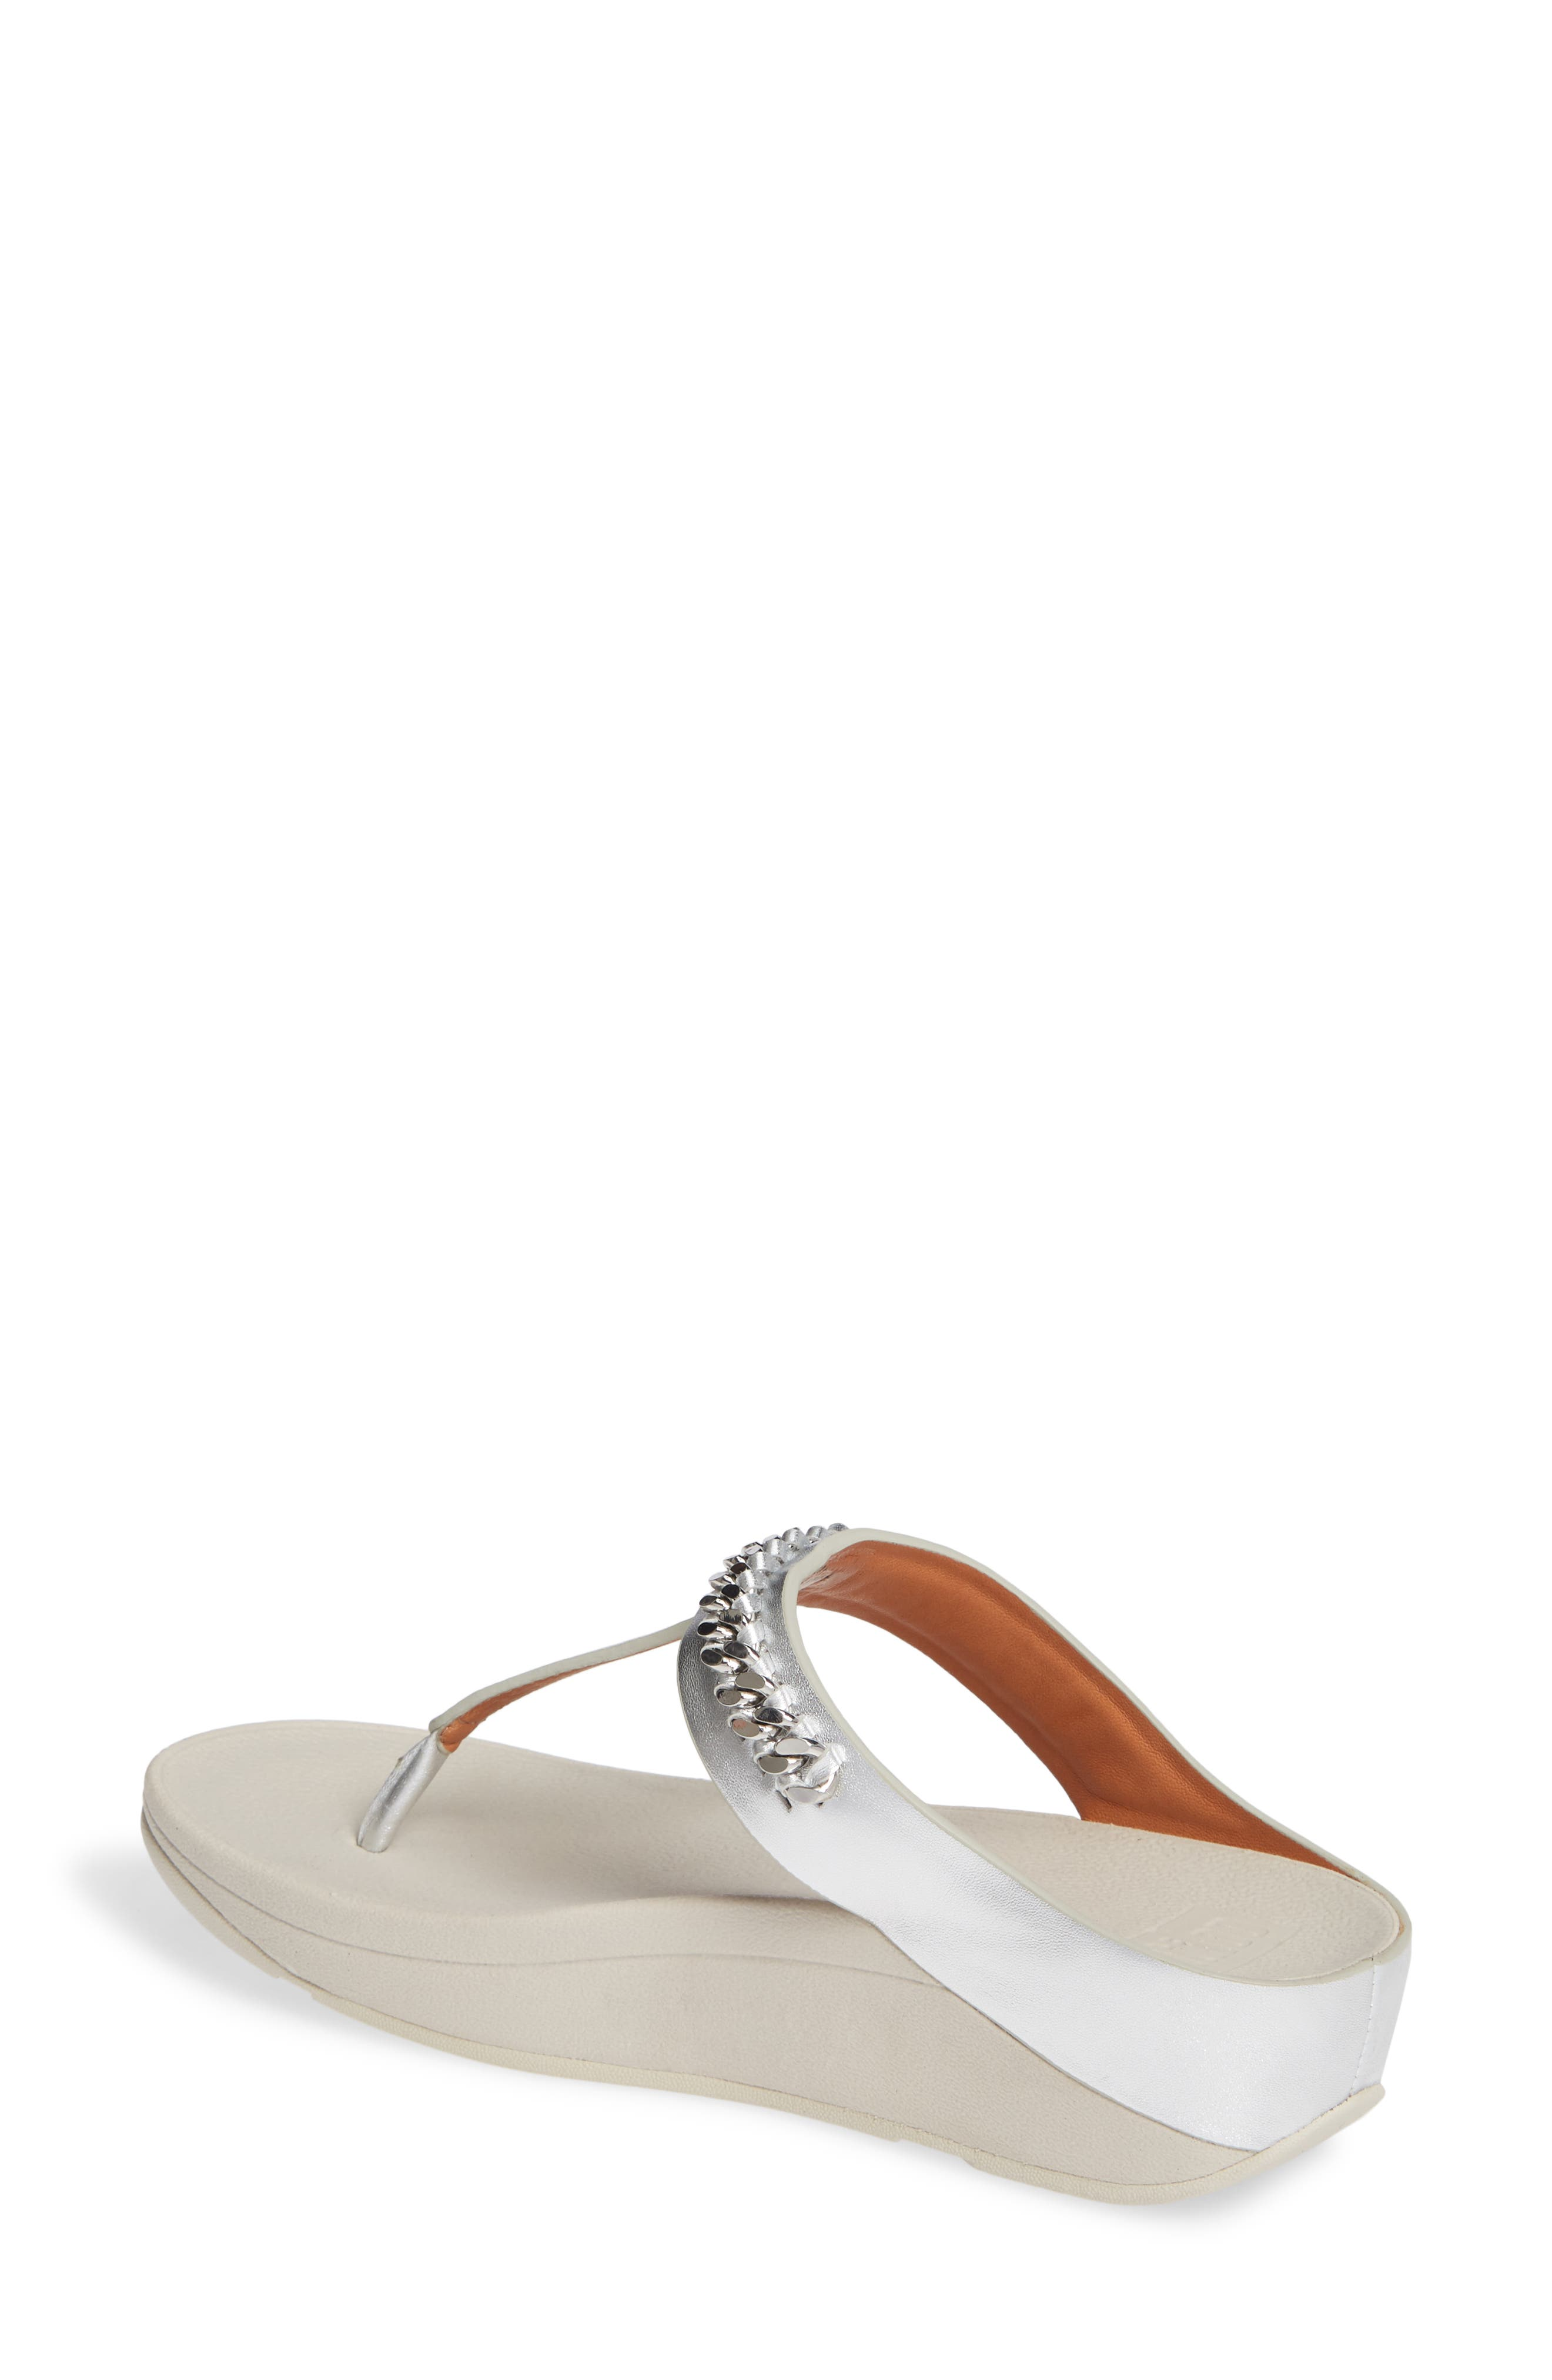 Fino Flip Flop,                             Alternate thumbnail 2, color,                             SILVER LEATHER